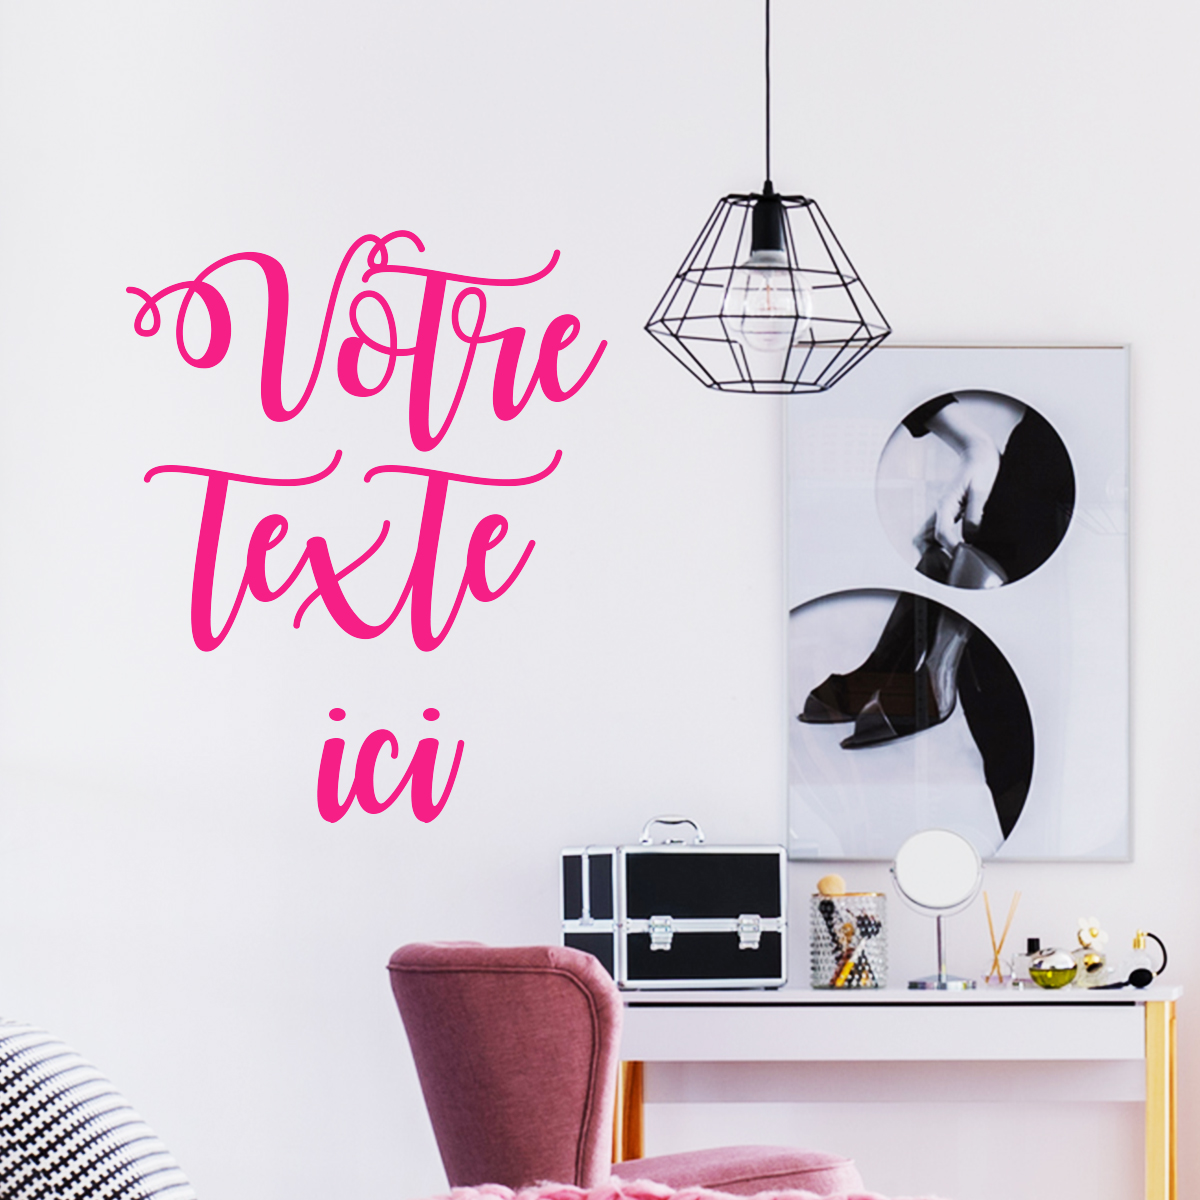 sticker personnalis avec votre texte stickers chambre. Black Bedroom Furniture Sets. Home Design Ideas